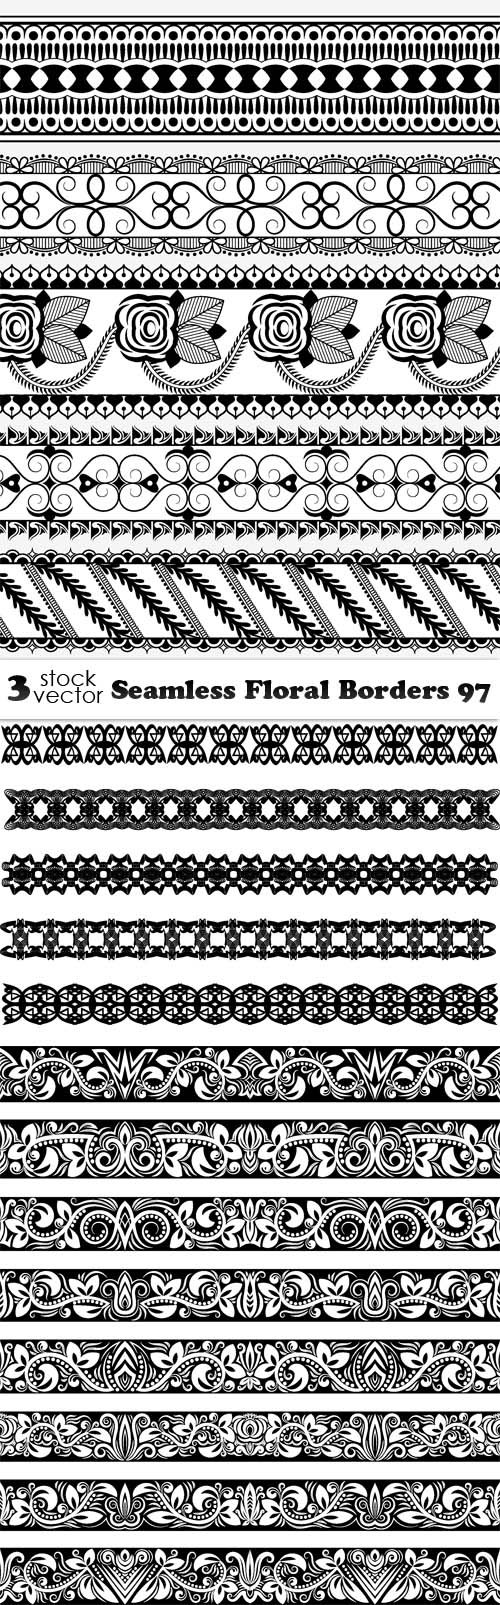 Vectors - Seamless Floral Borders 97